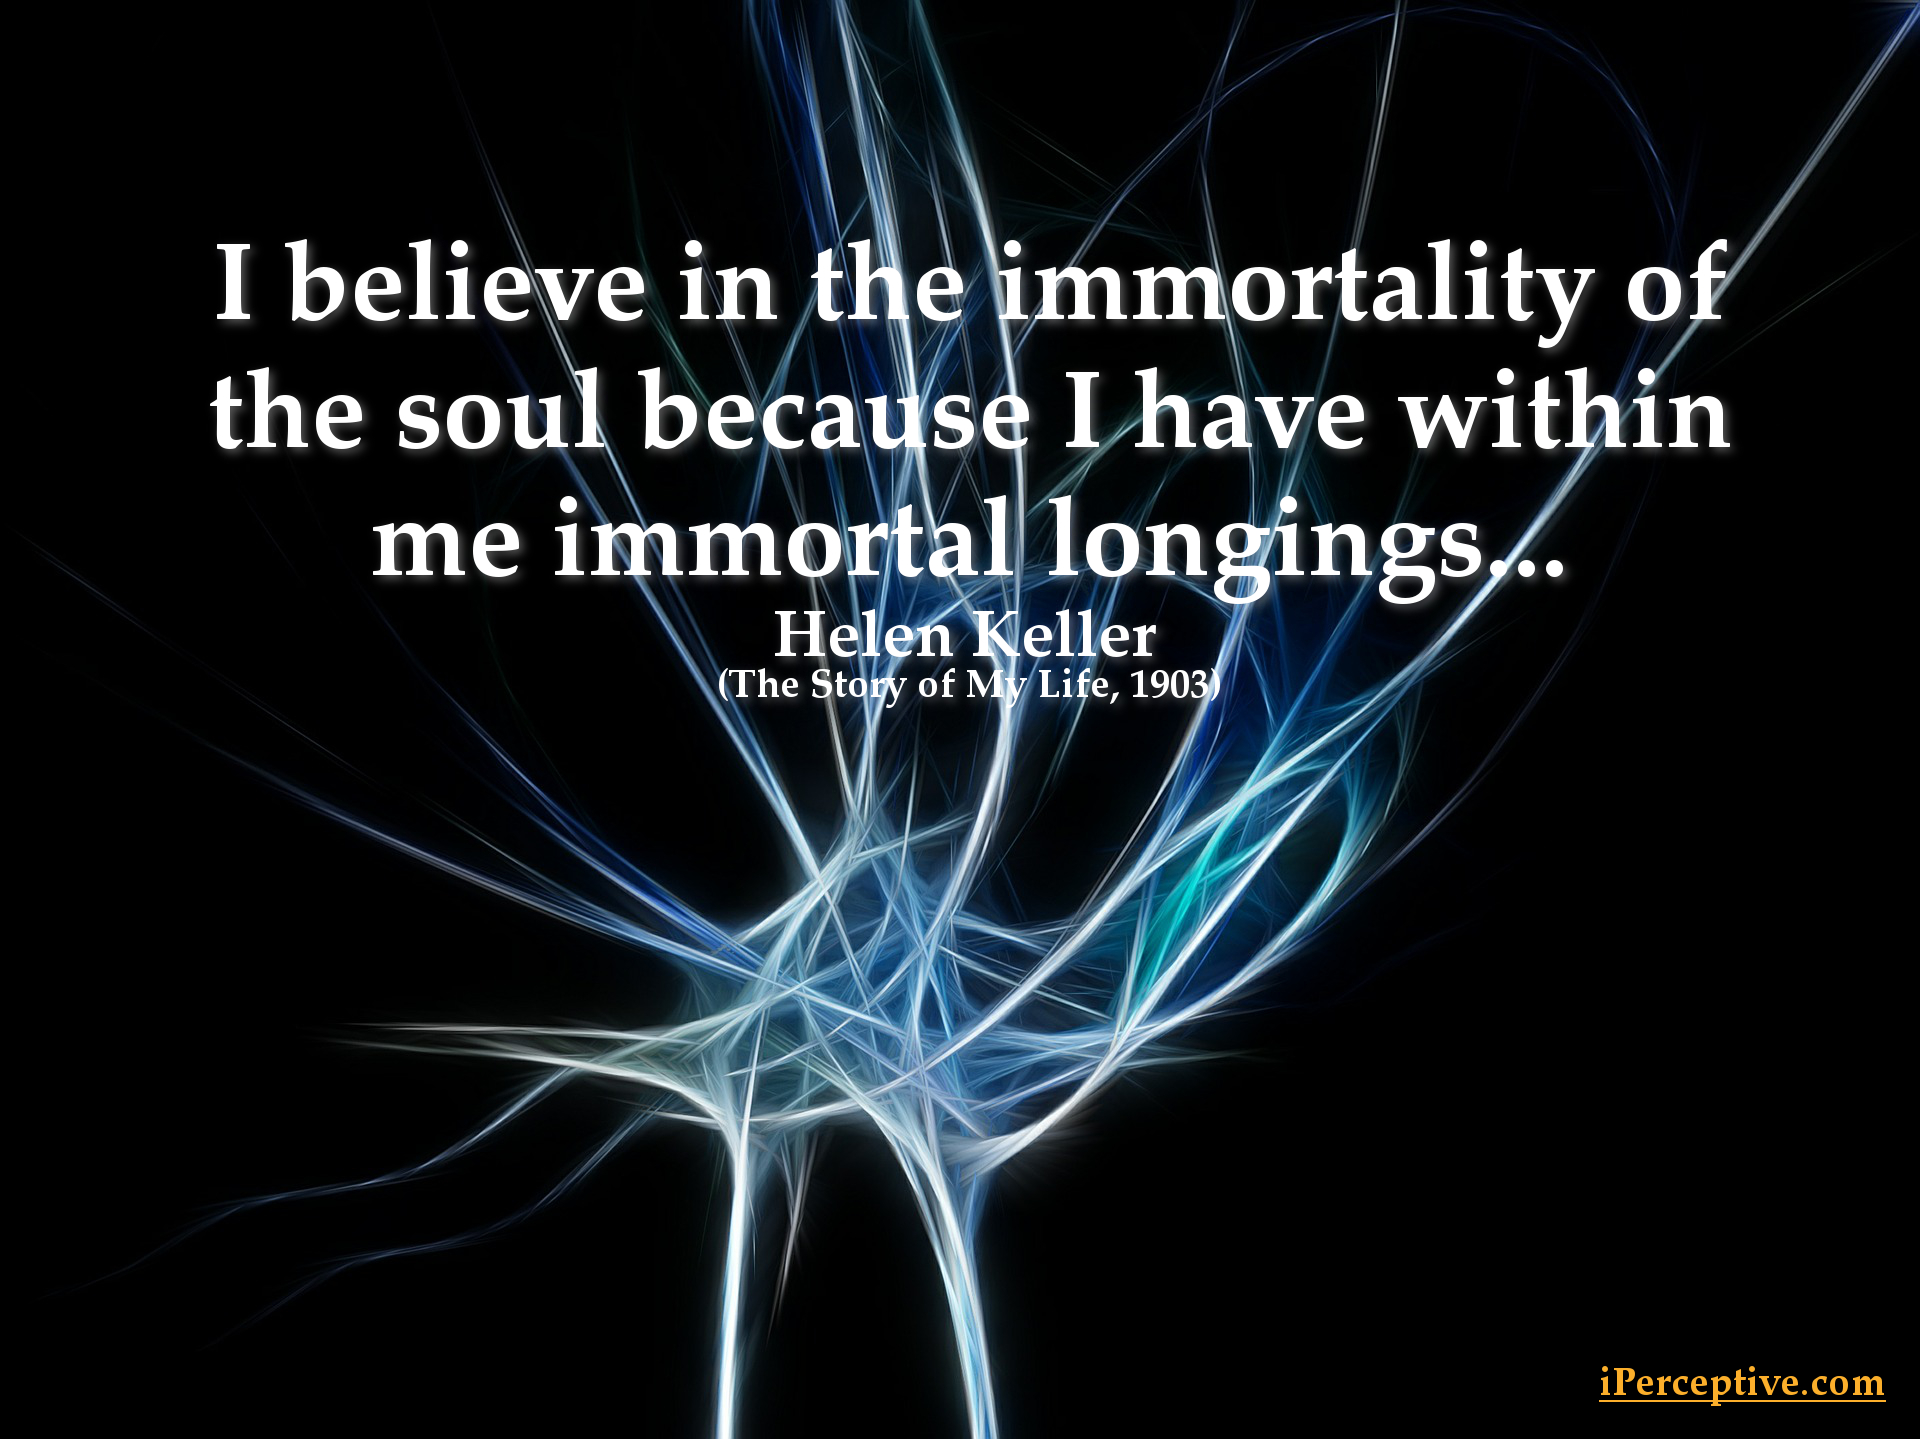 Helen keller quotes iperceptive helen keller quote i believe in the immortality of the soul because i have within altavistaventures Images